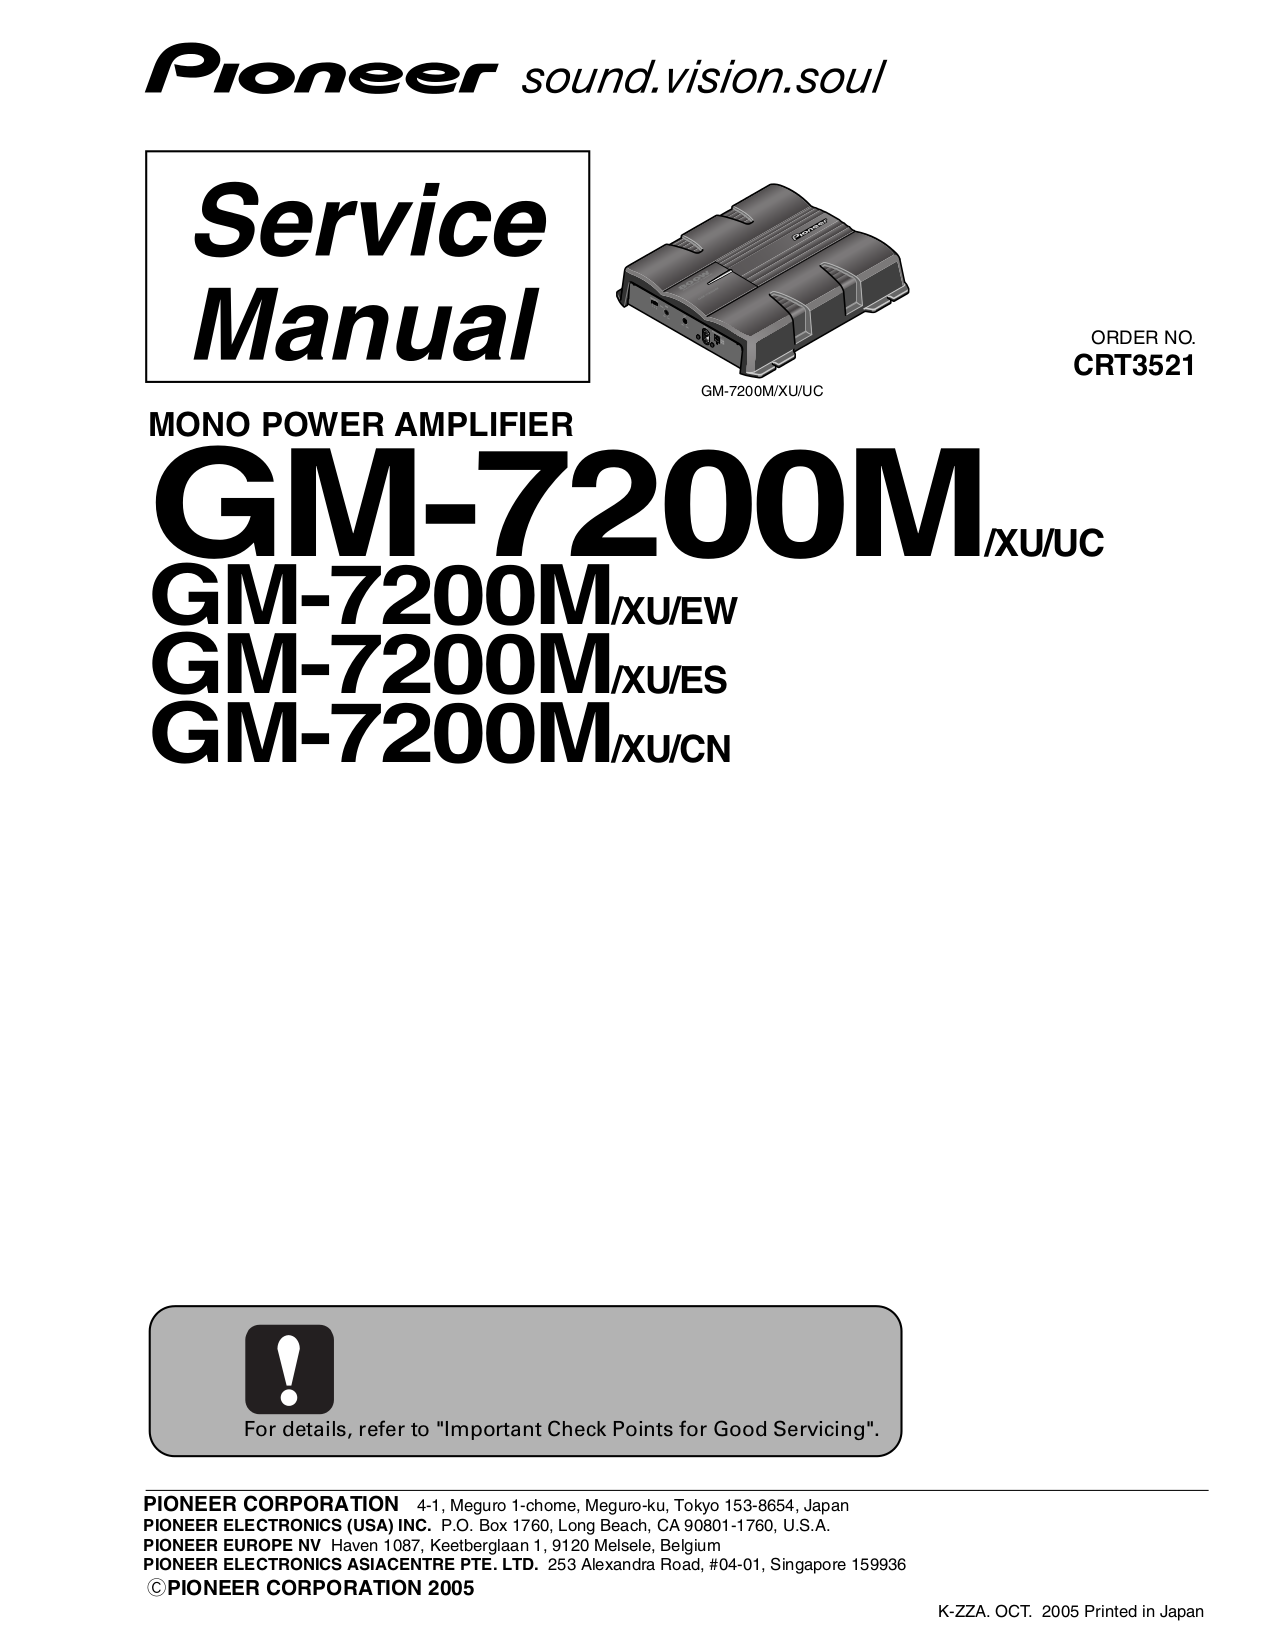 pioneer gm 4000f wiring diagram wiring diagram \u2022 free buick wiring diagrams download free pdf for pioneer gm 7200m car amplifier manual rh umlib com gm factory wiring diagram gm wiring diagrams for dummies